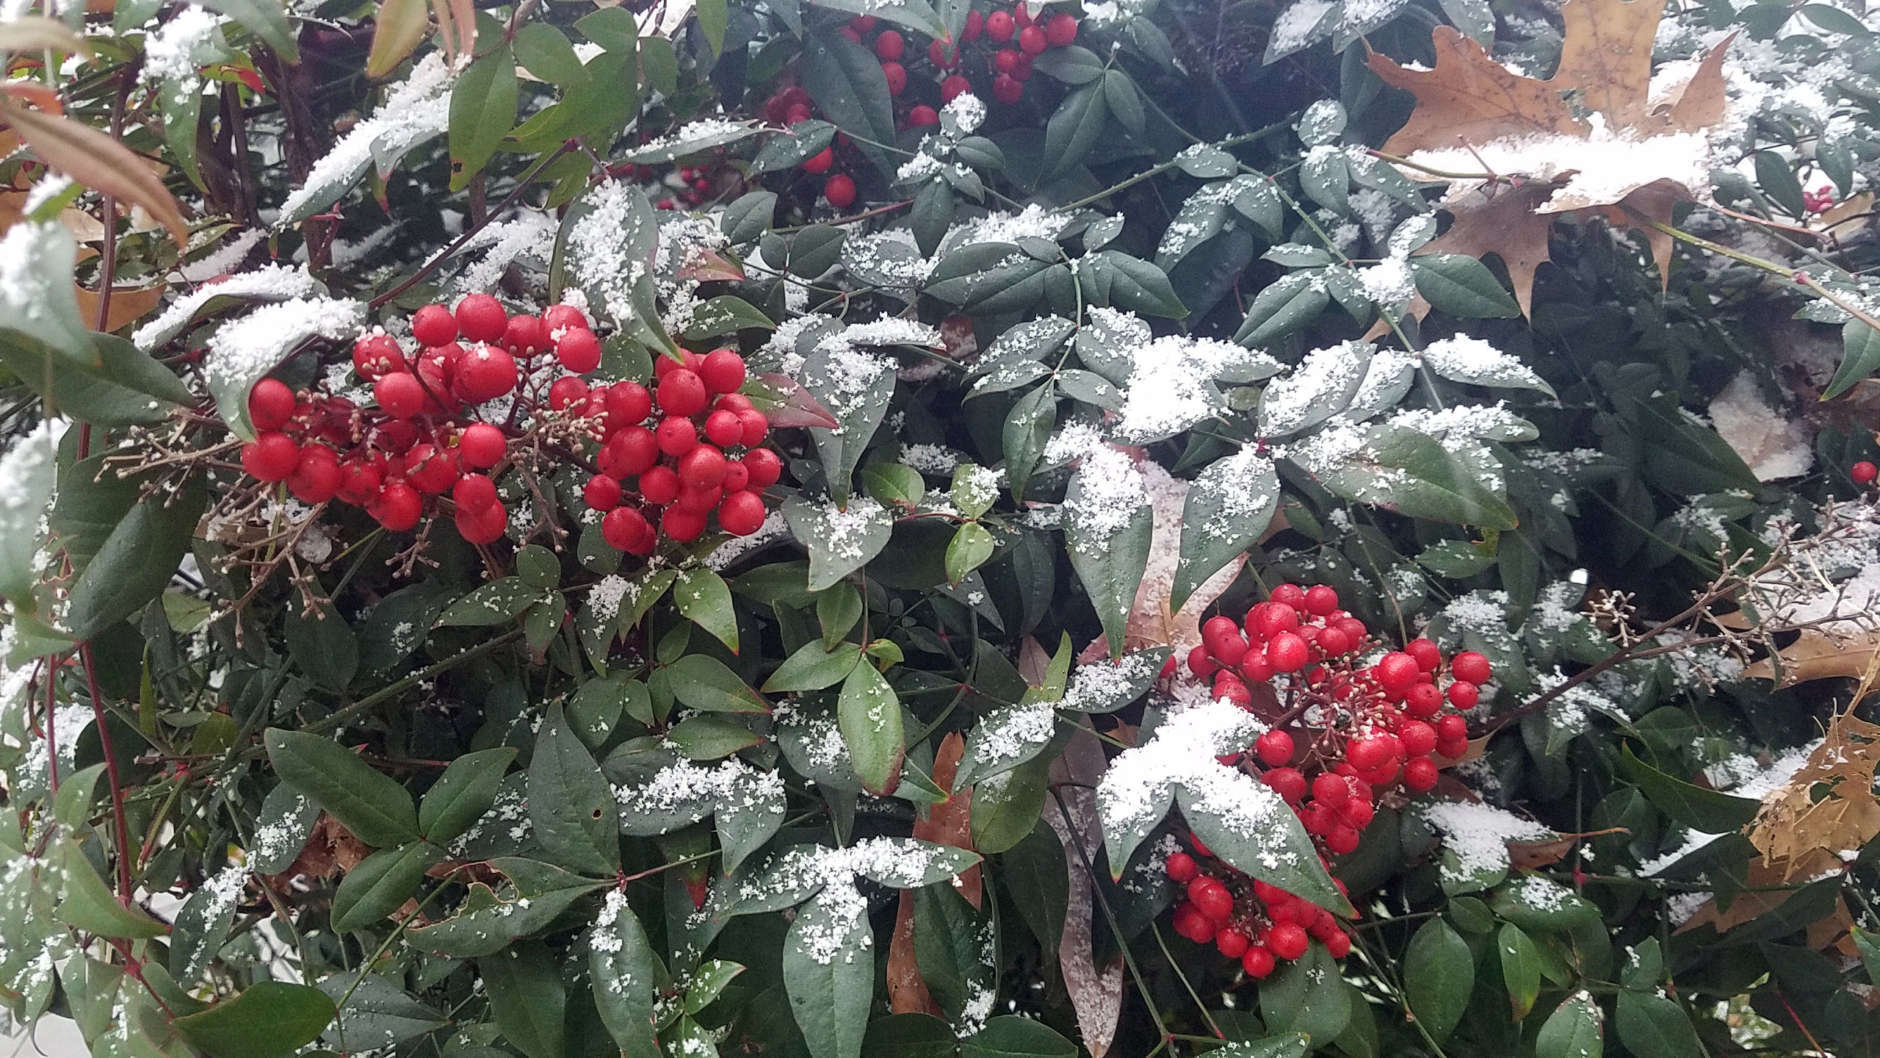 Snow collects on bushes outside the WTOP newsroom in northwest D.C. (WTOP/William Vitka)